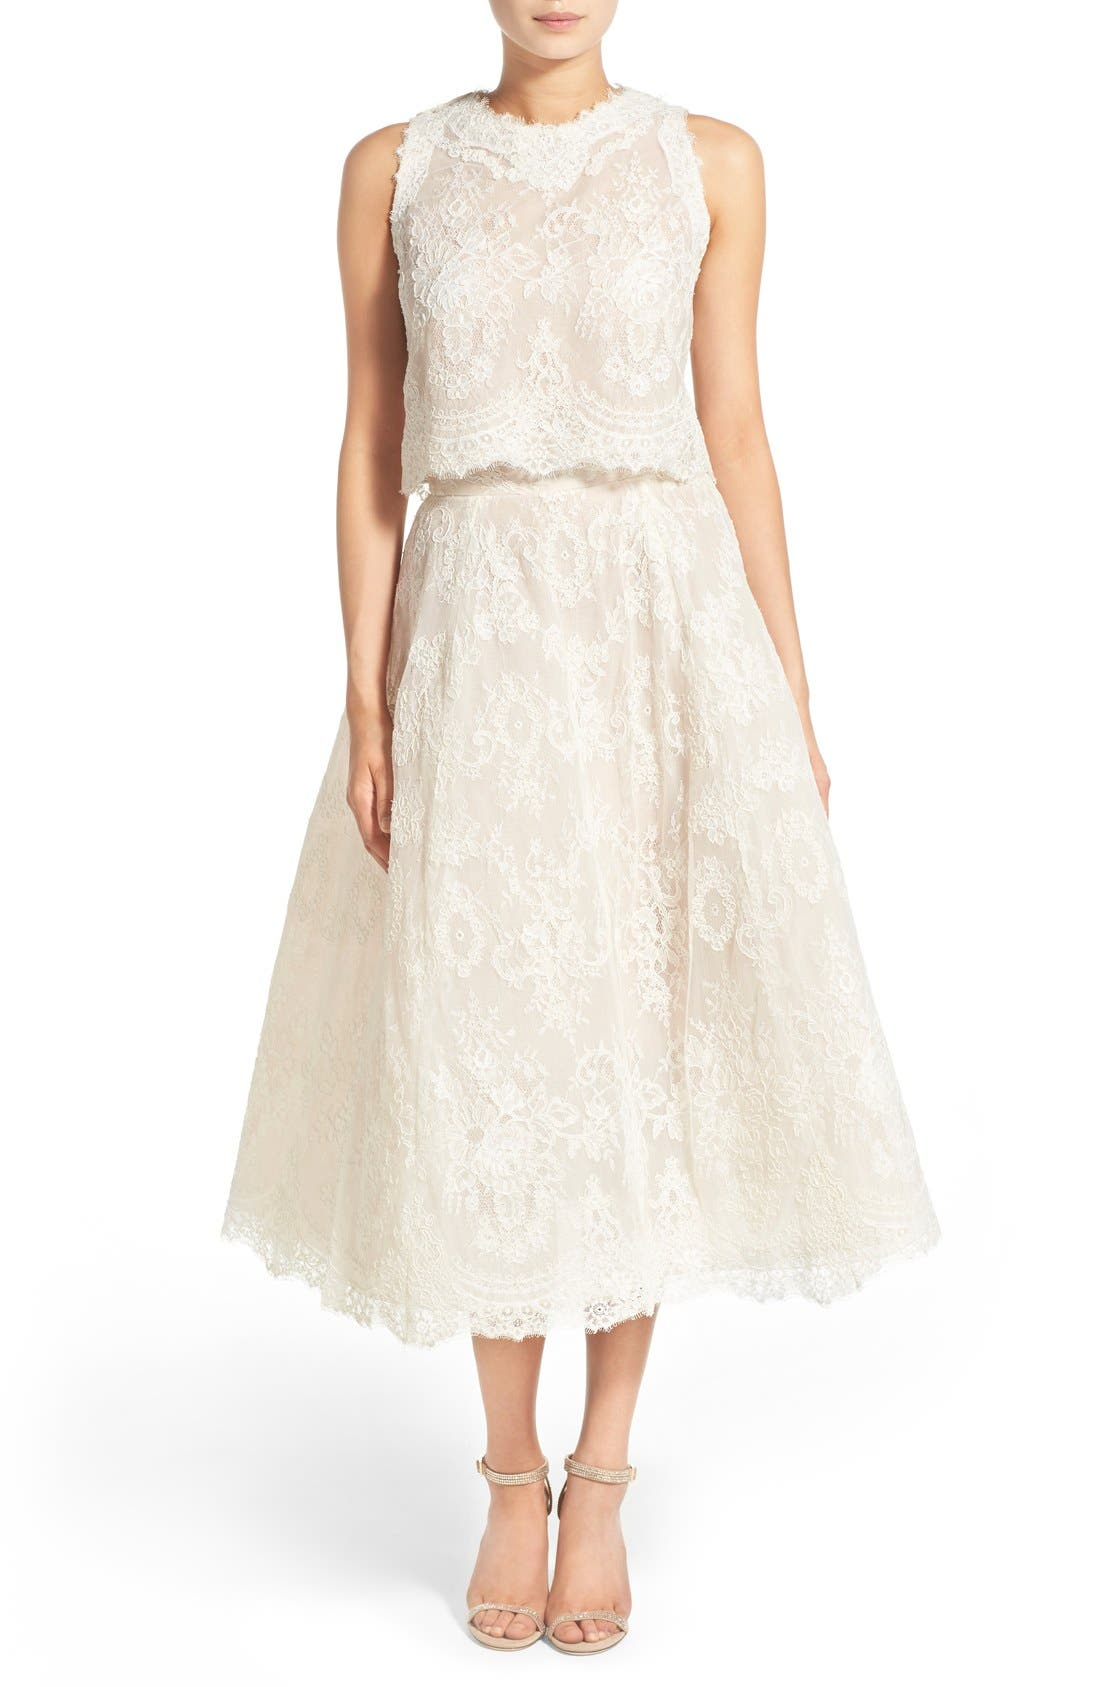 Main Image - BLISS Monique Lhuillier 2-Pc. Embroidered Lace Dress